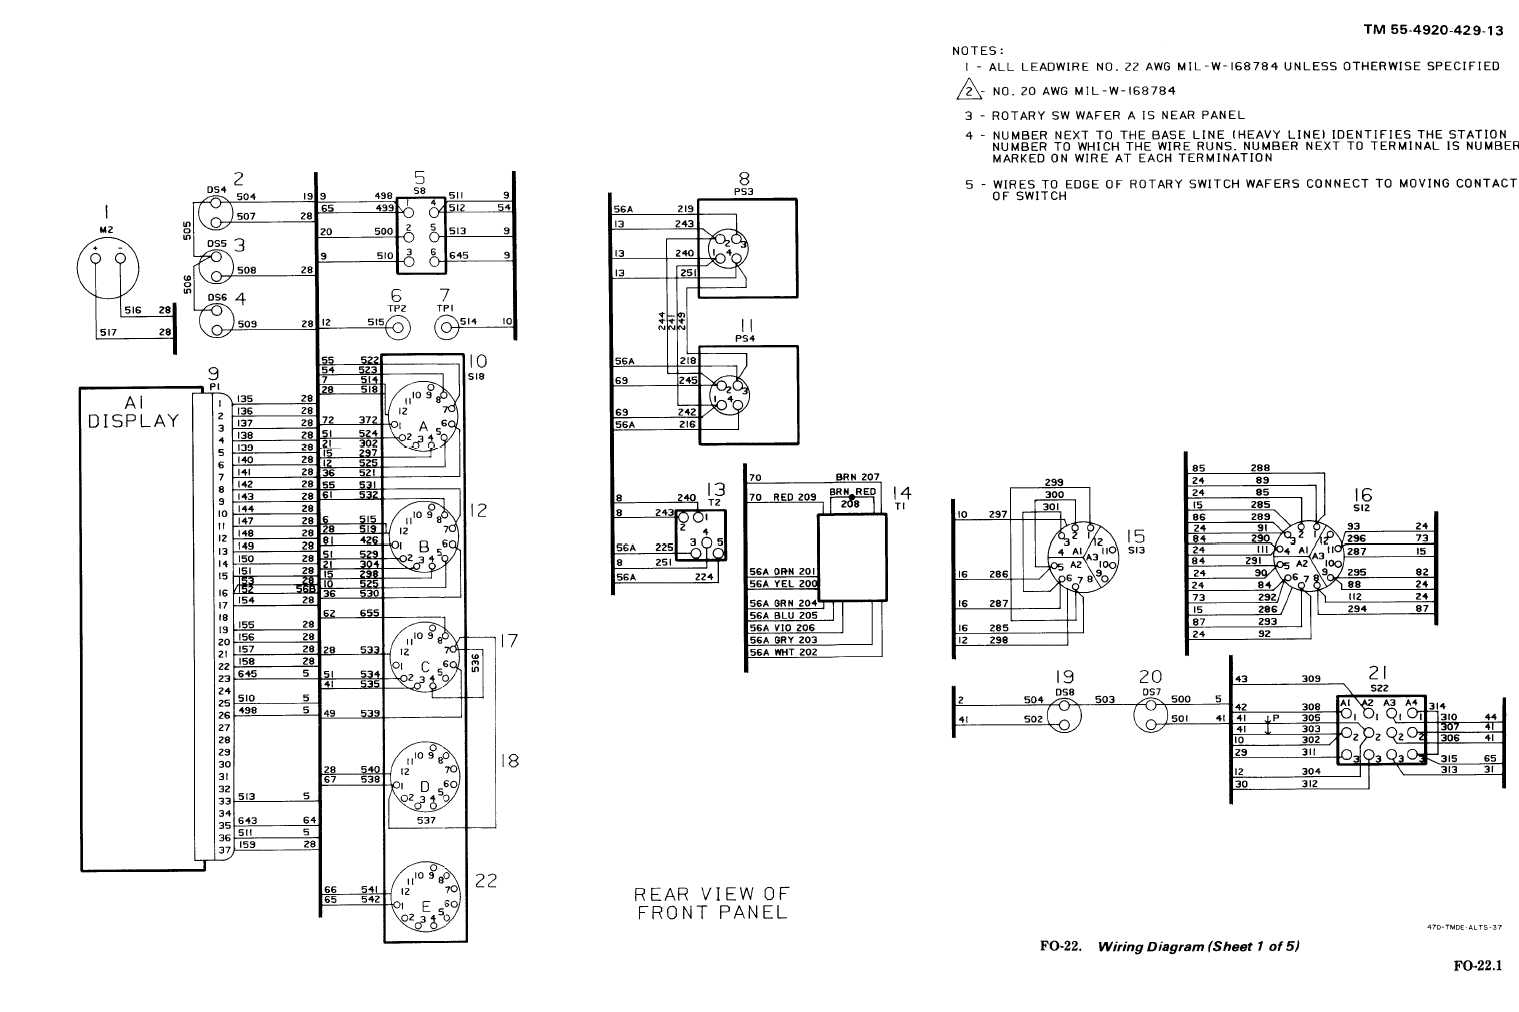 FO-22. Wiring Diagram (sheet 1 of 5)